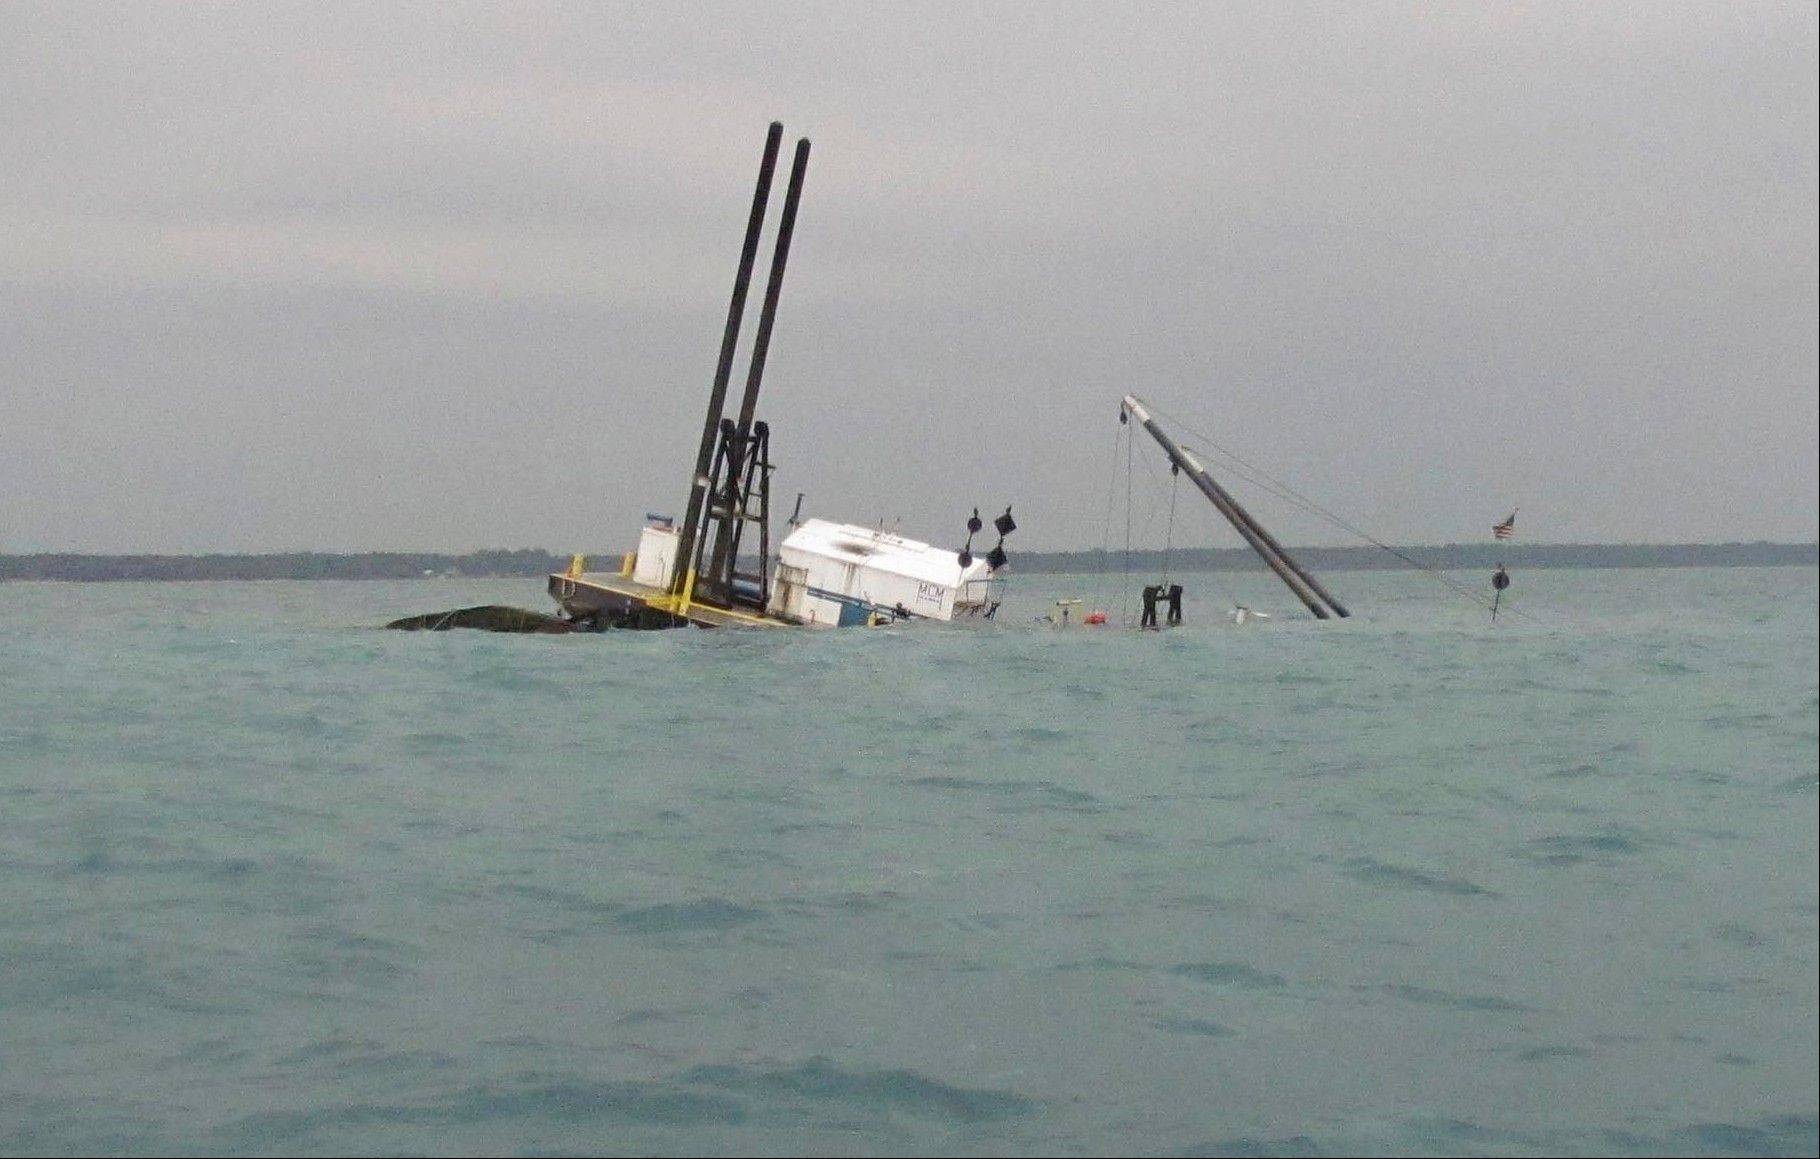 Part of a 110-foot commercial dredge, the Arthur J, can still be seen above the waters of Lake Huron after it sunk about 2 miles off Lakeport, Michigan, spilling an unknown amount of diesel fuel, early Thursday morning, July 19, 2012. The barge was carrying about 1,500 gallons of diesel fuel but it is uncertain how much escaped. St. Clair County Hazardous Material Team crews are working to contain the fuel with booms.